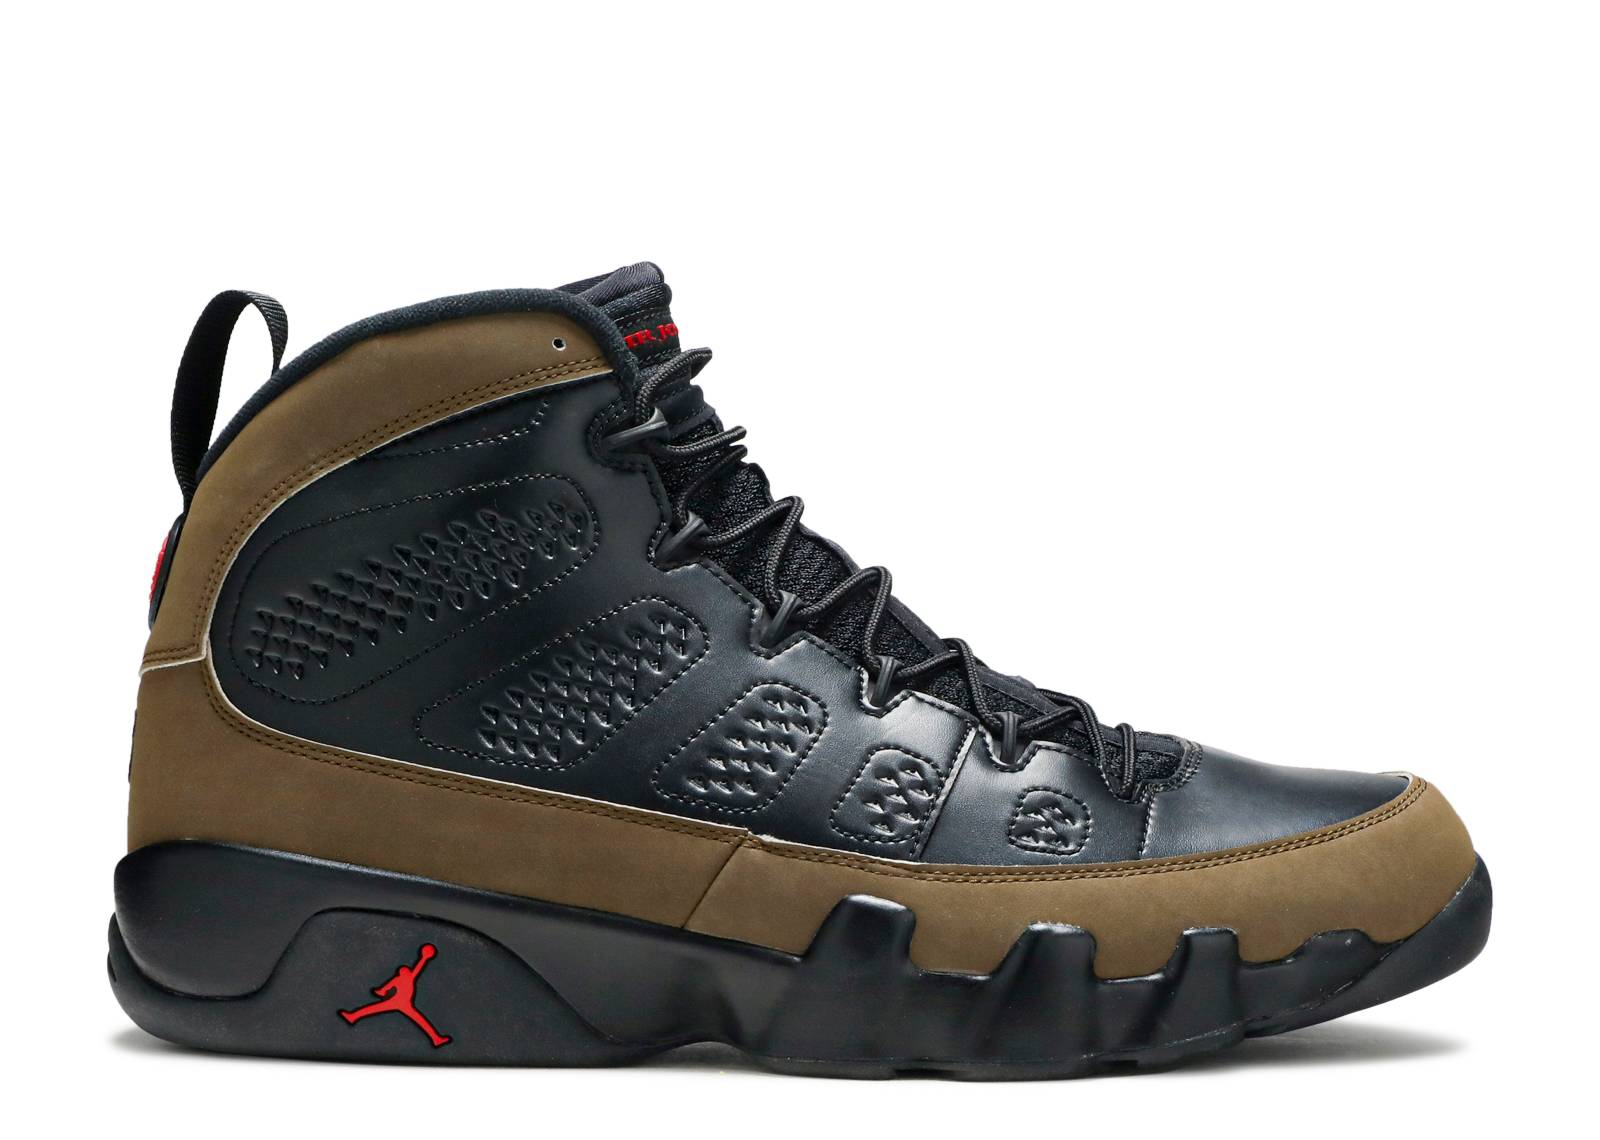 2eeee7e3f7be Air Jordan 9 Retro